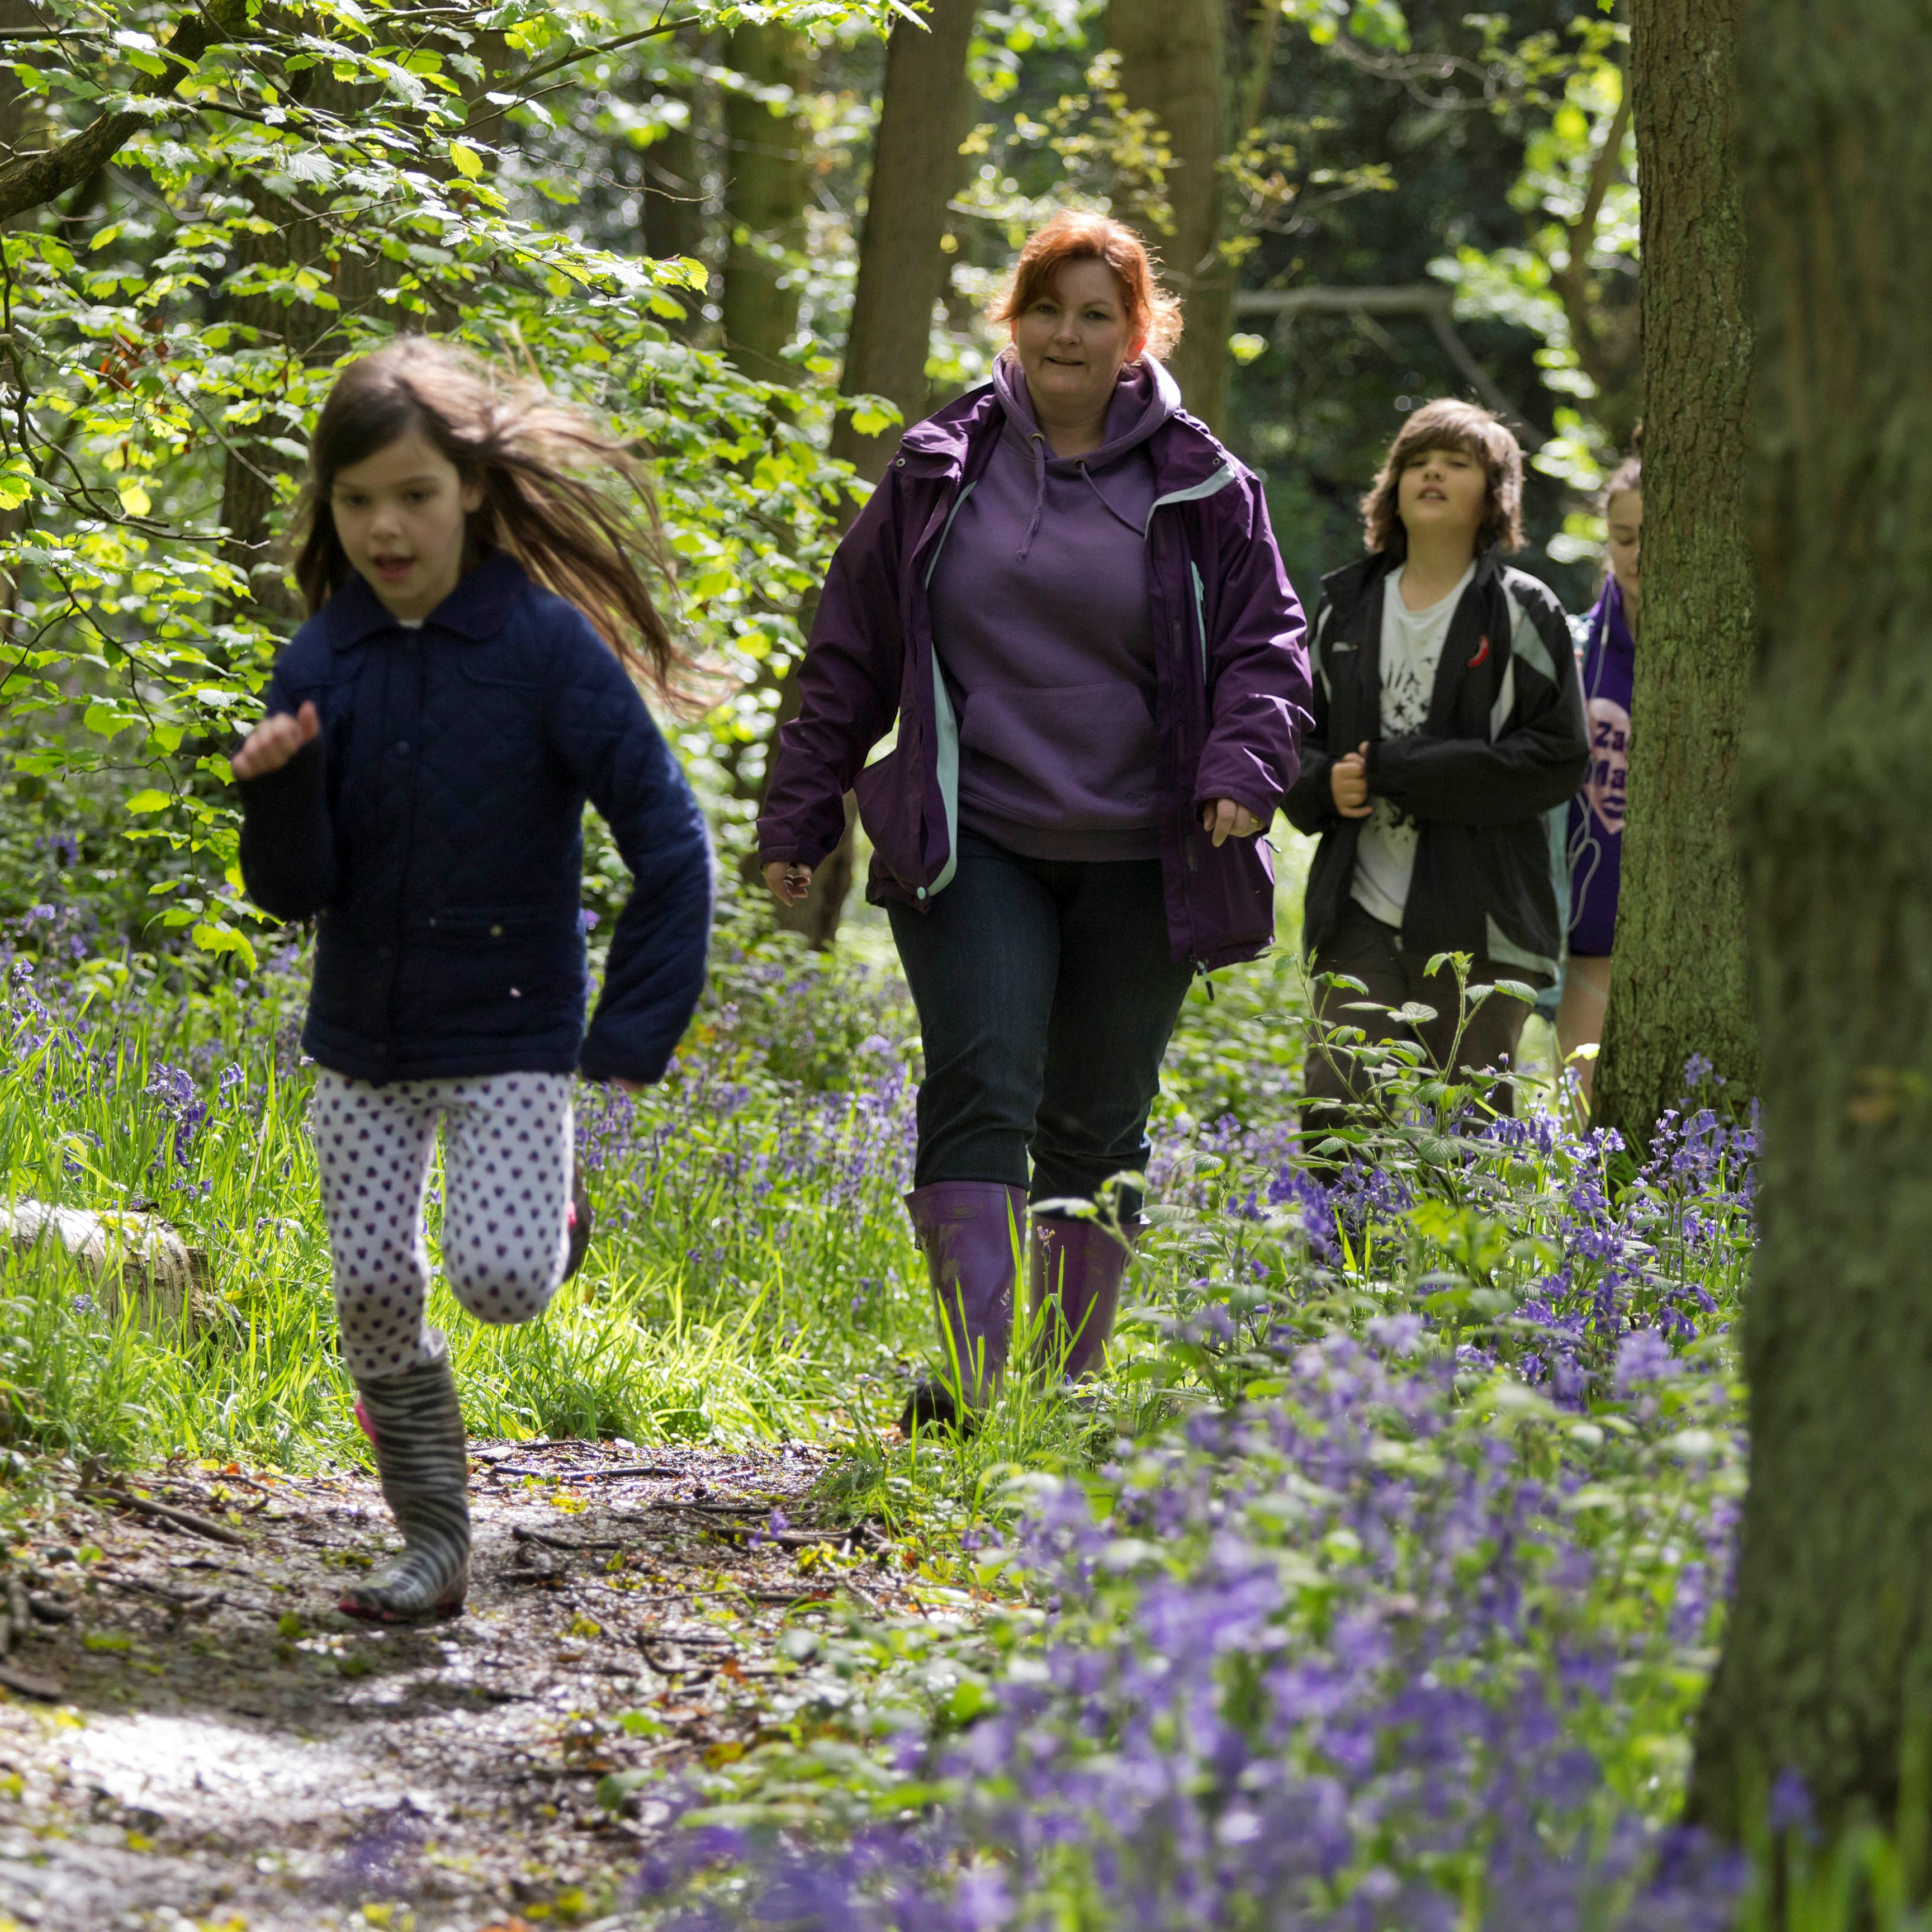 Take part and celebrate a decade of the walking festival